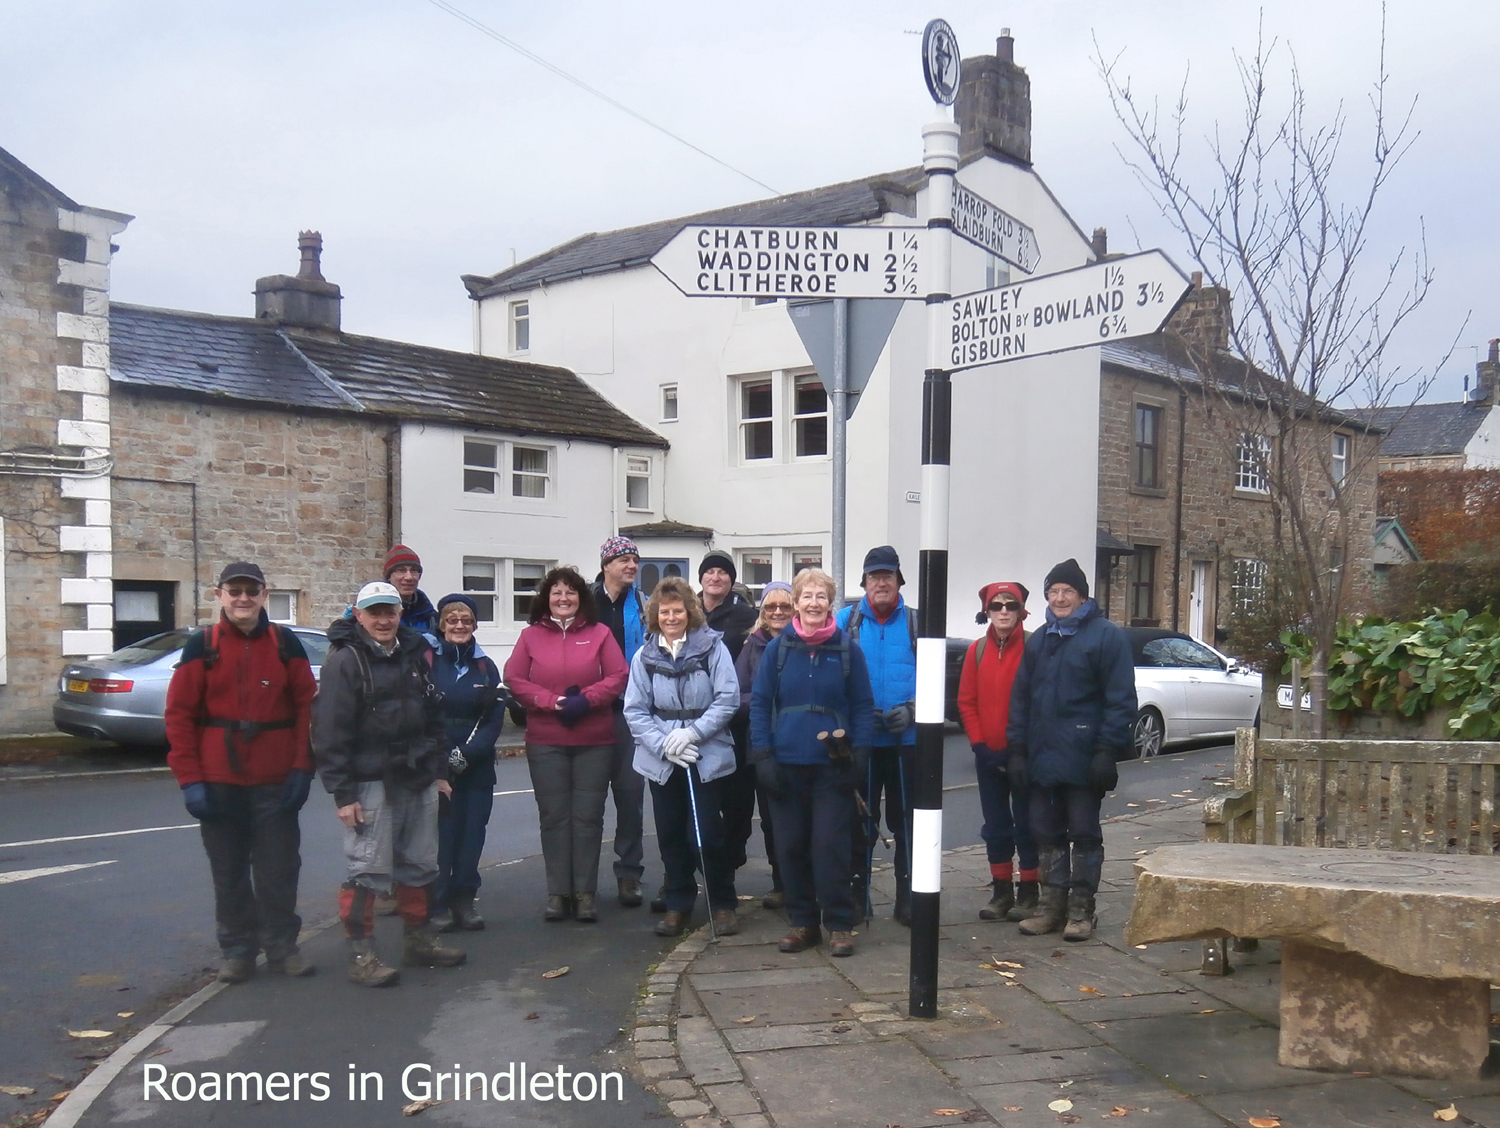 Roamers at Grindleton pic